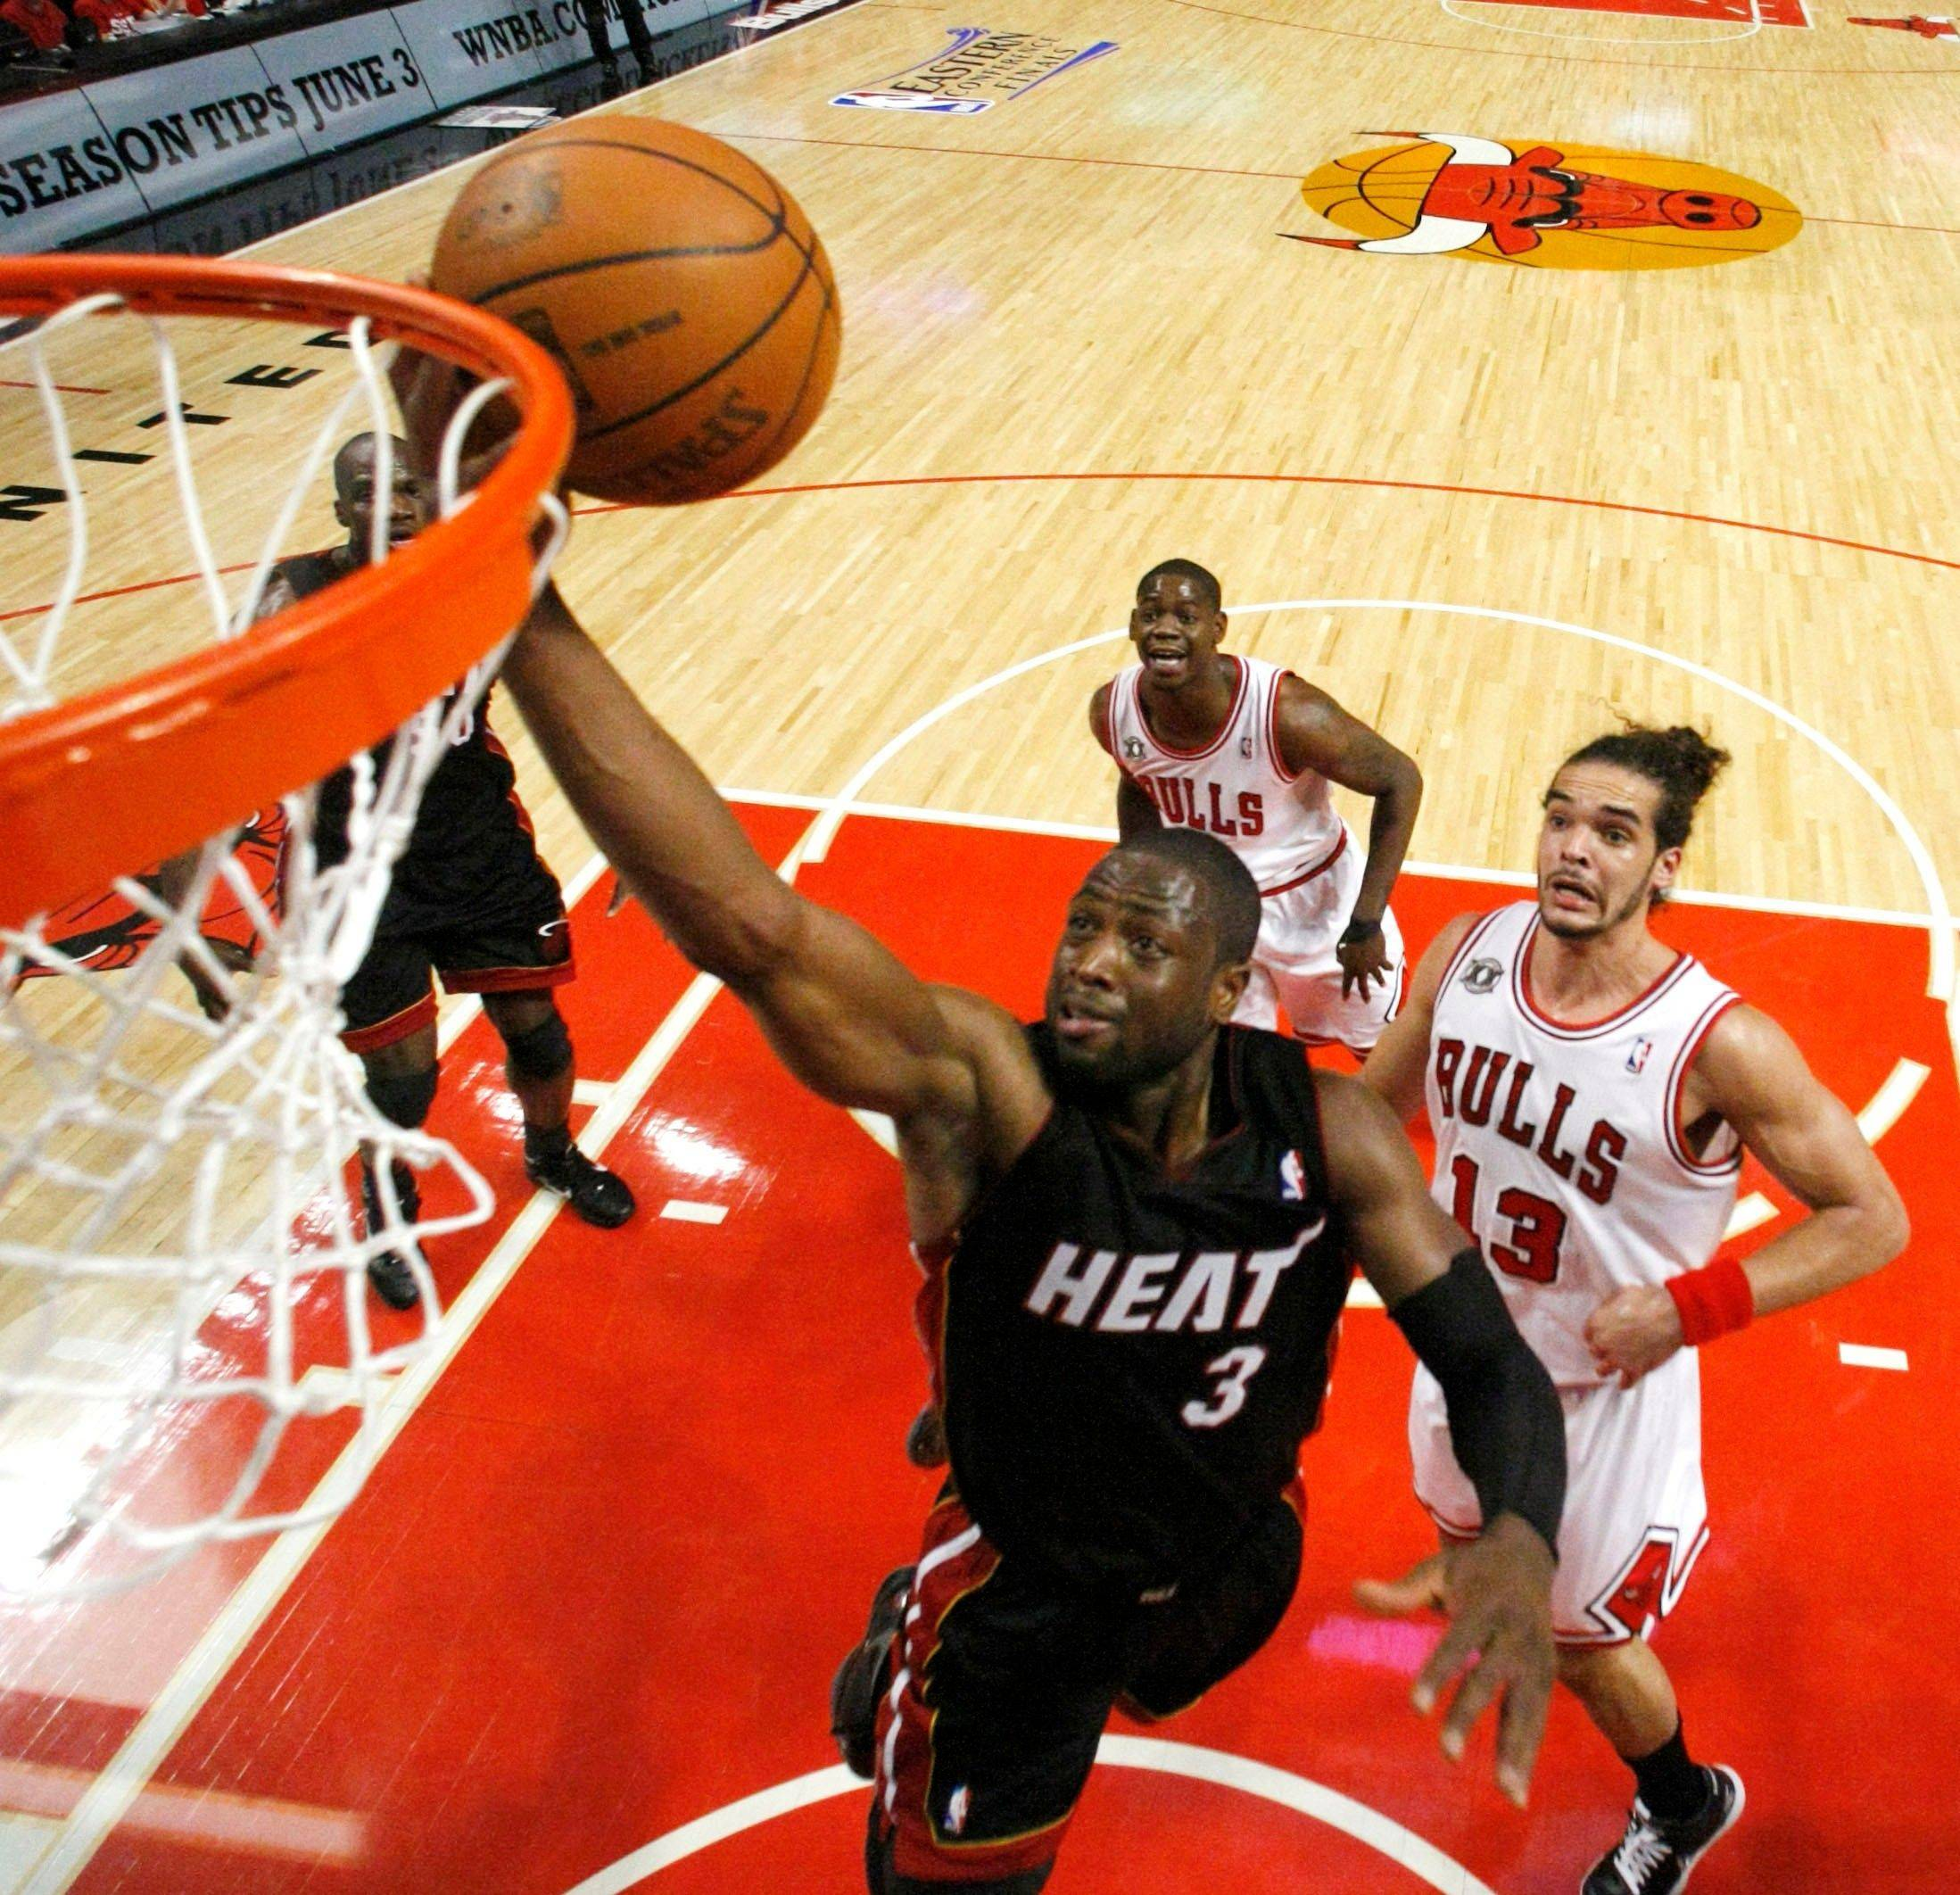 Miami Heat shooting guard Dwyane Wade, left, shoots past the defense of Chicago Bulls center Joakim Noah, right, and Ronnie Brewer during the second quarter.